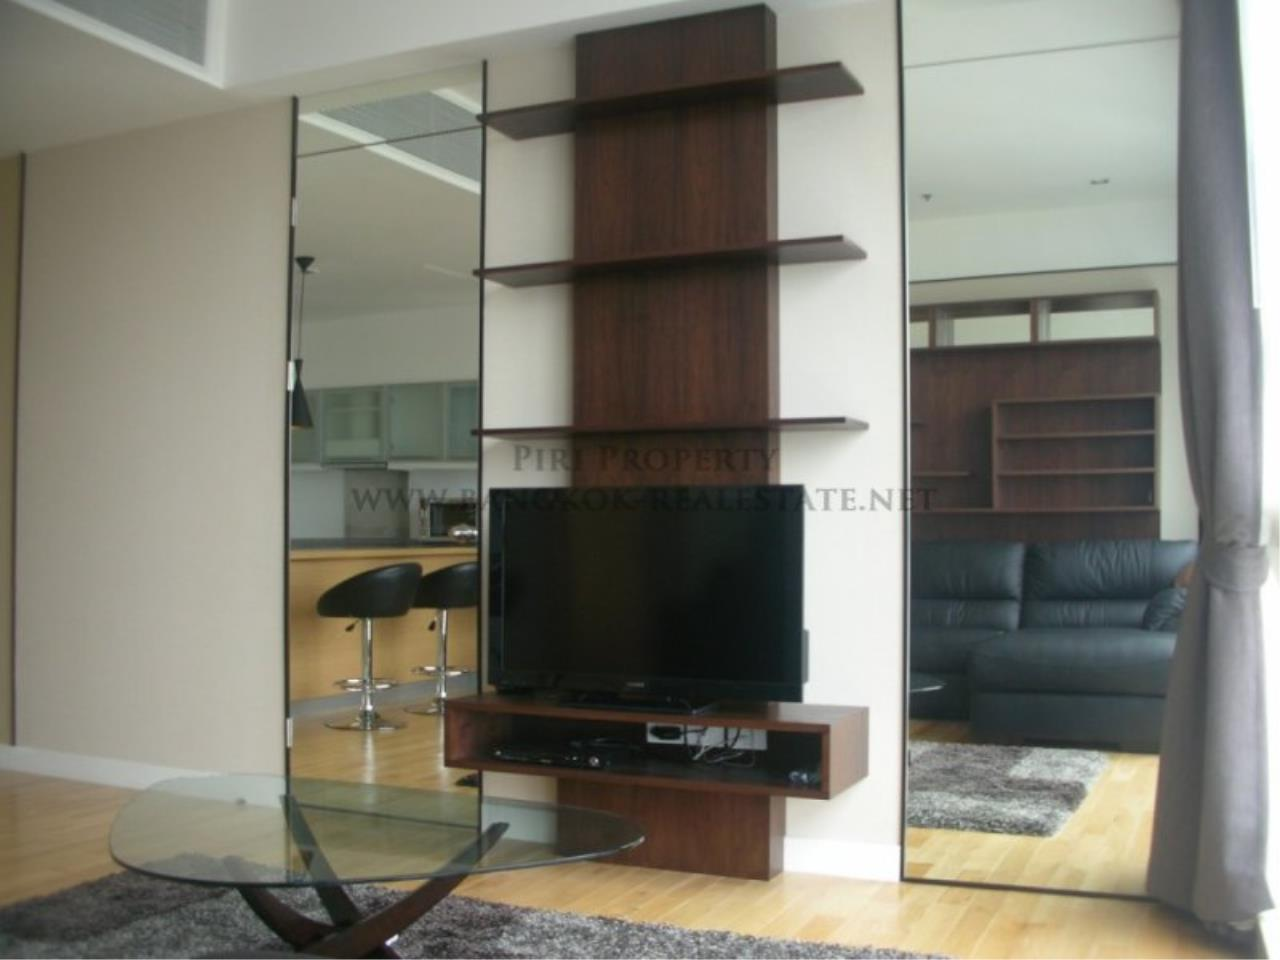 Piri Property Agency's 1 Bedroom - Millennium Residence - High Floor - Foreign Quota 2